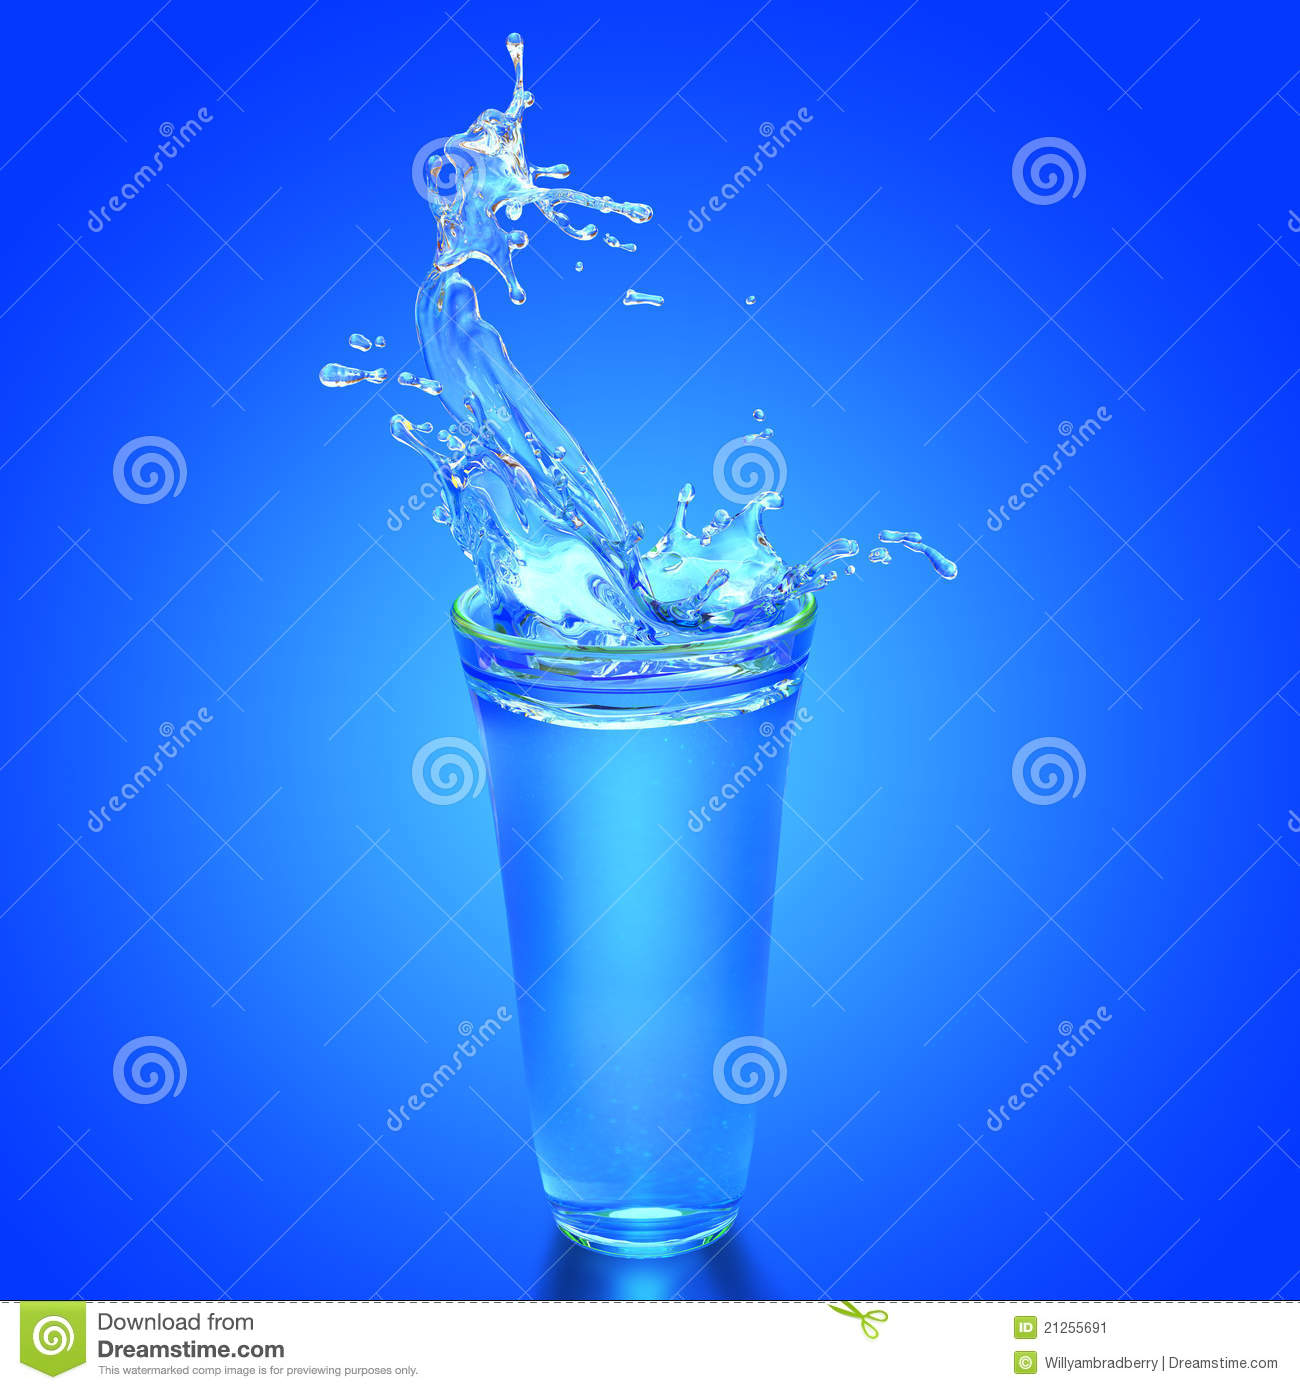 Blue light and splashed water in cold glass on blue background.